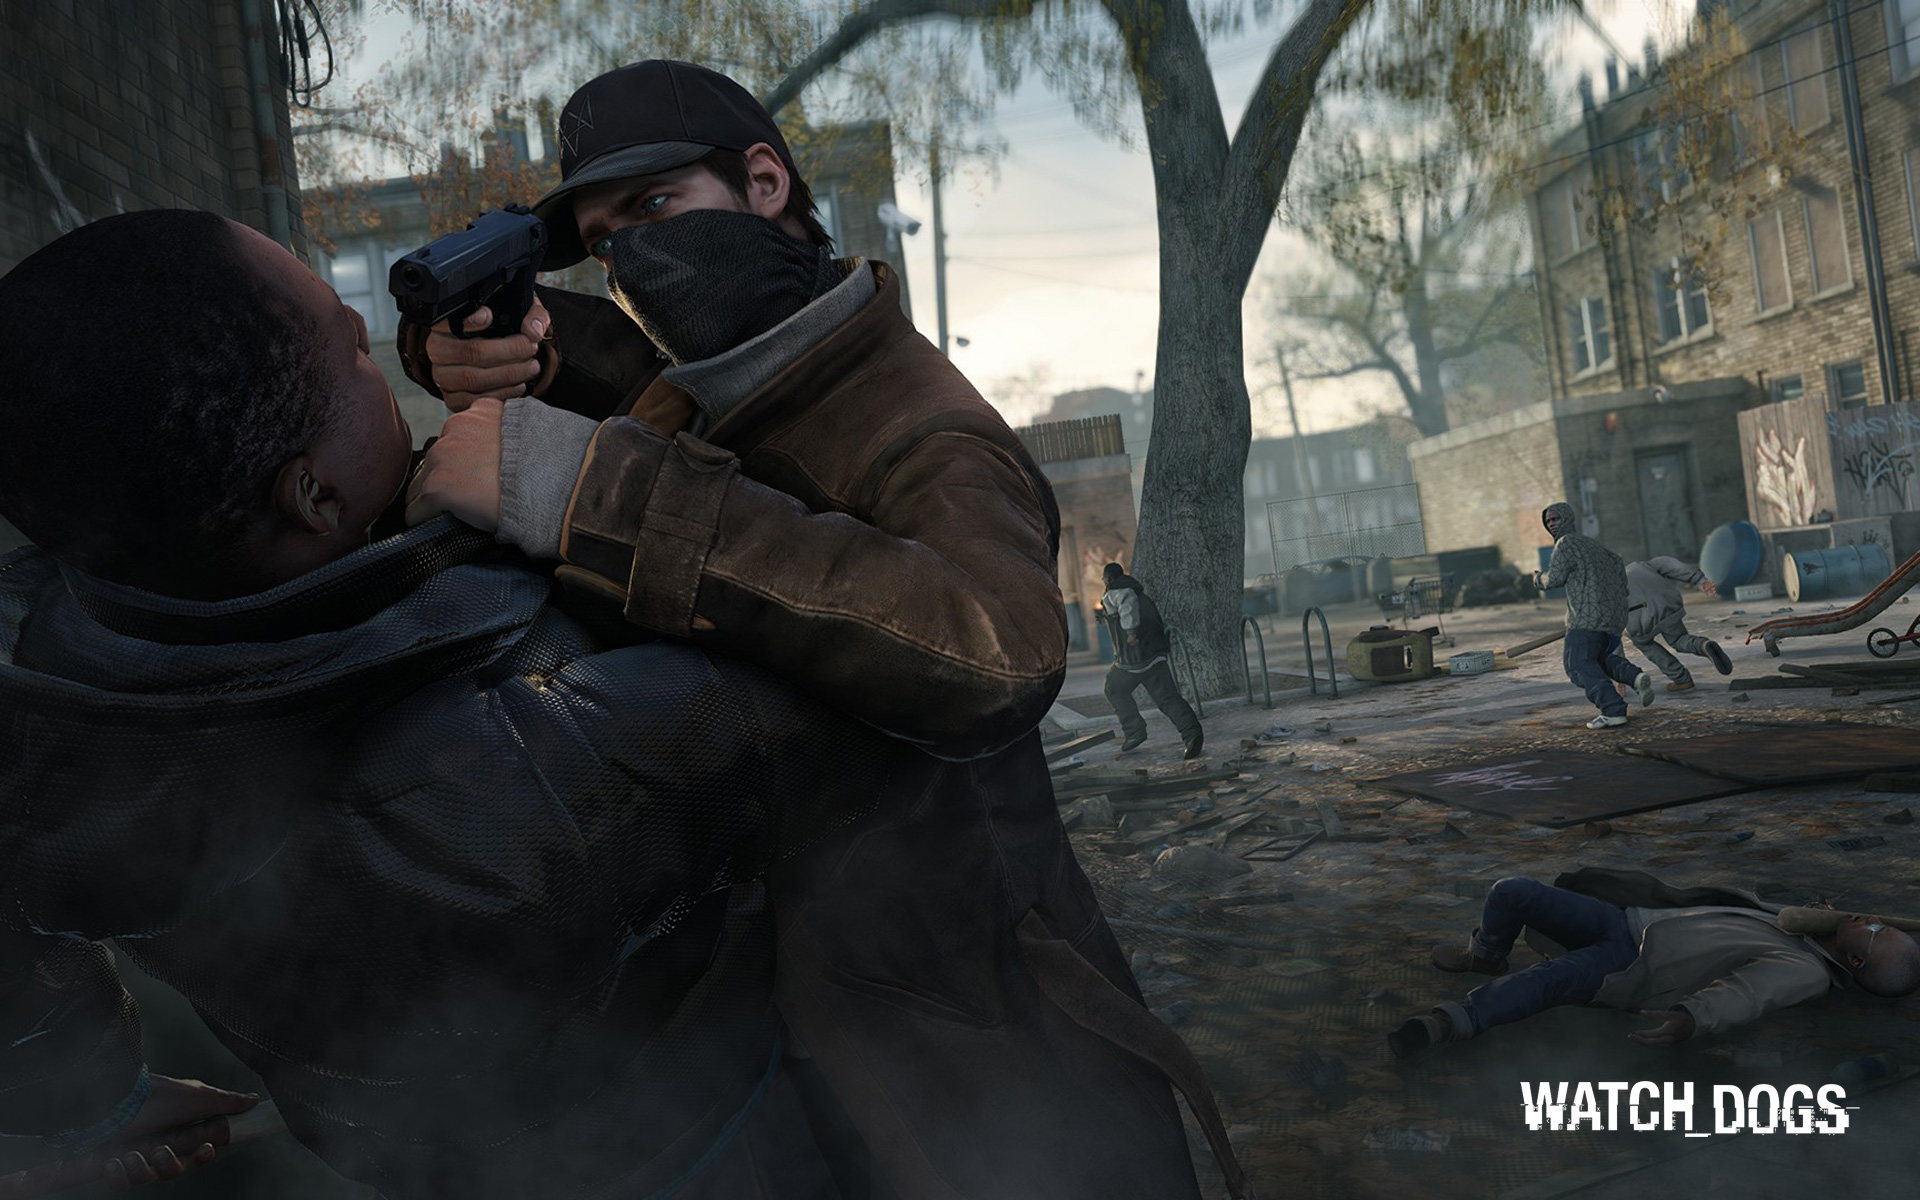 Watch Dogs Wallpaper in 1920x1200 1920x1200